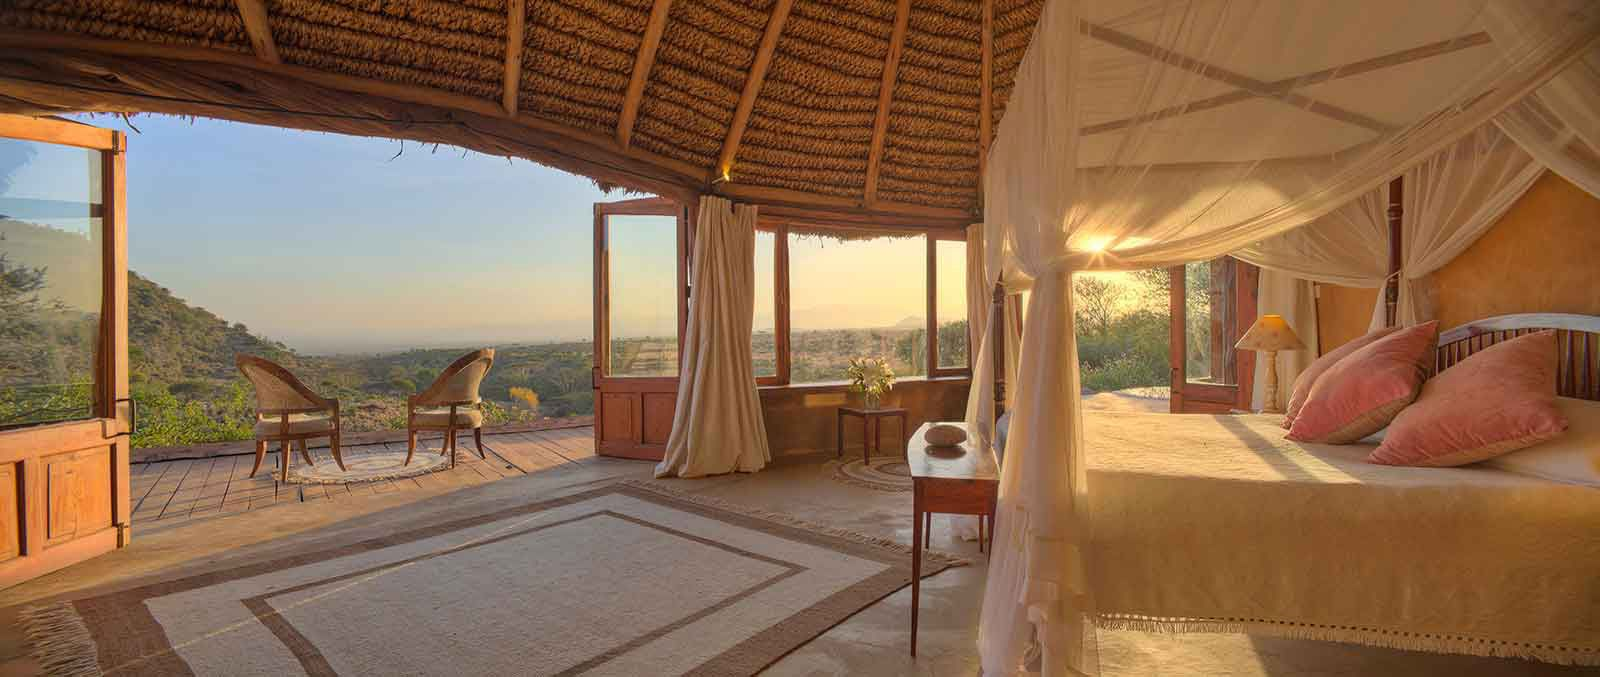 Lewa Wilderness Lodge